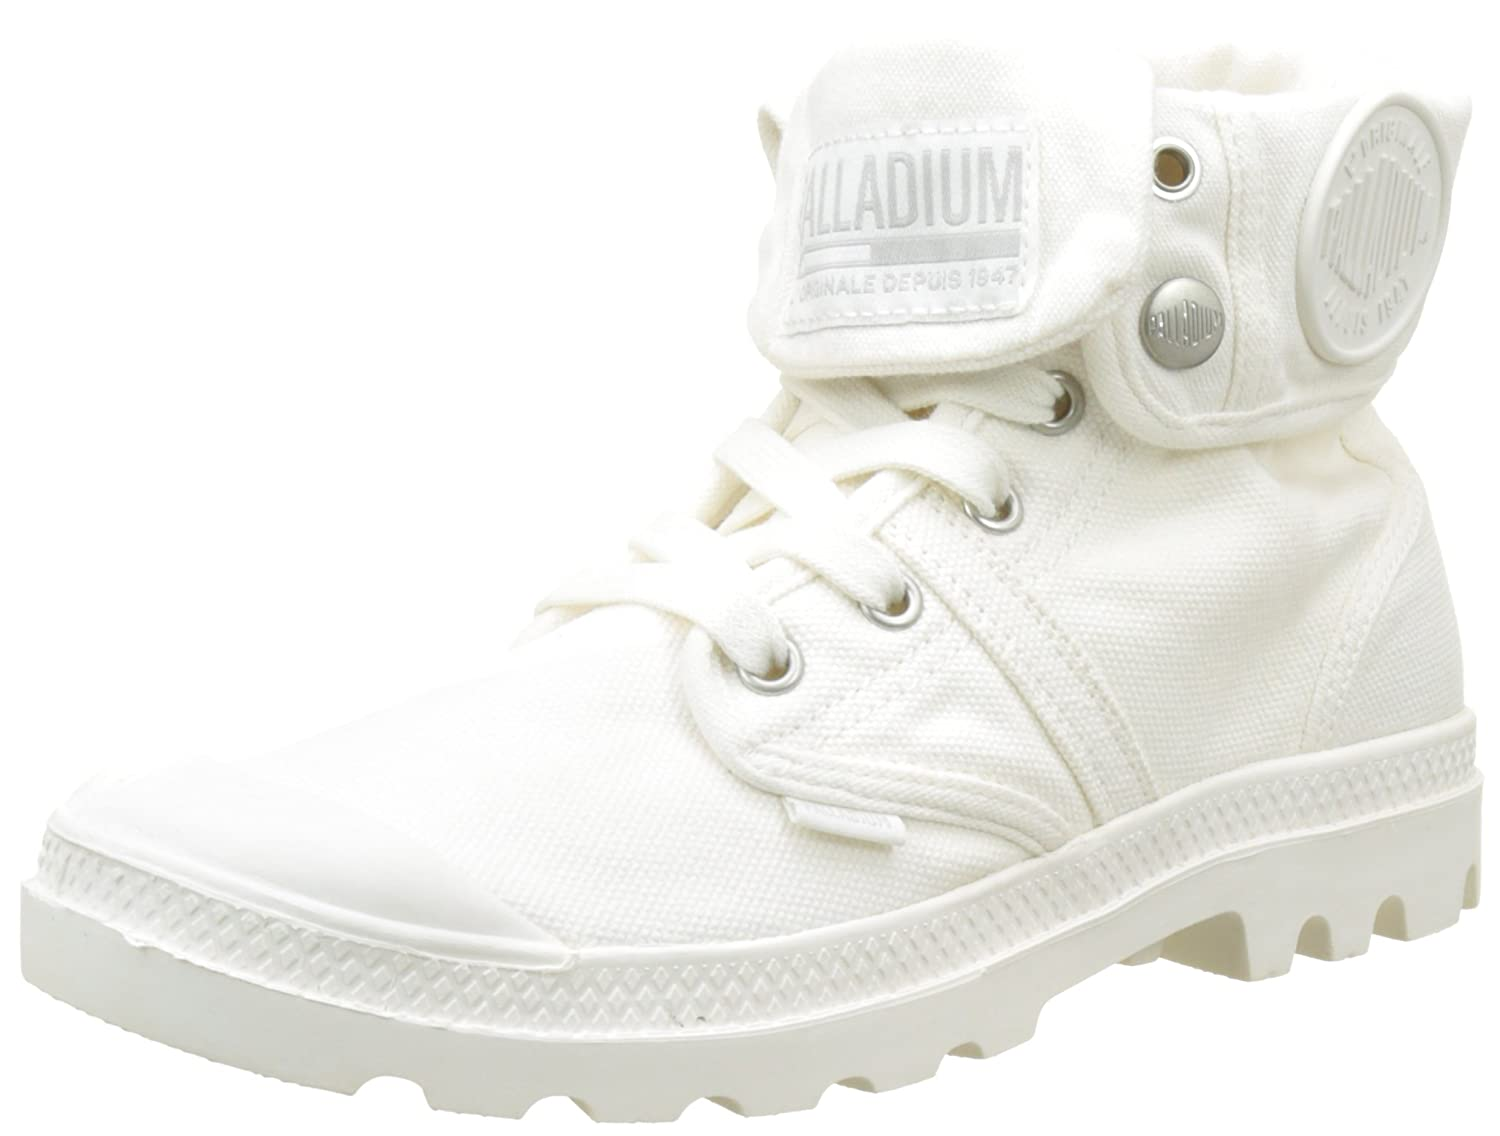 Palladium Pallabrouse Baggy, Bottes et B002VR5GEU Bottines Bottines Souples 18670 Femme Blanc (Marshmallow/Marshmallow G57) c62bde0 - boatplans.space